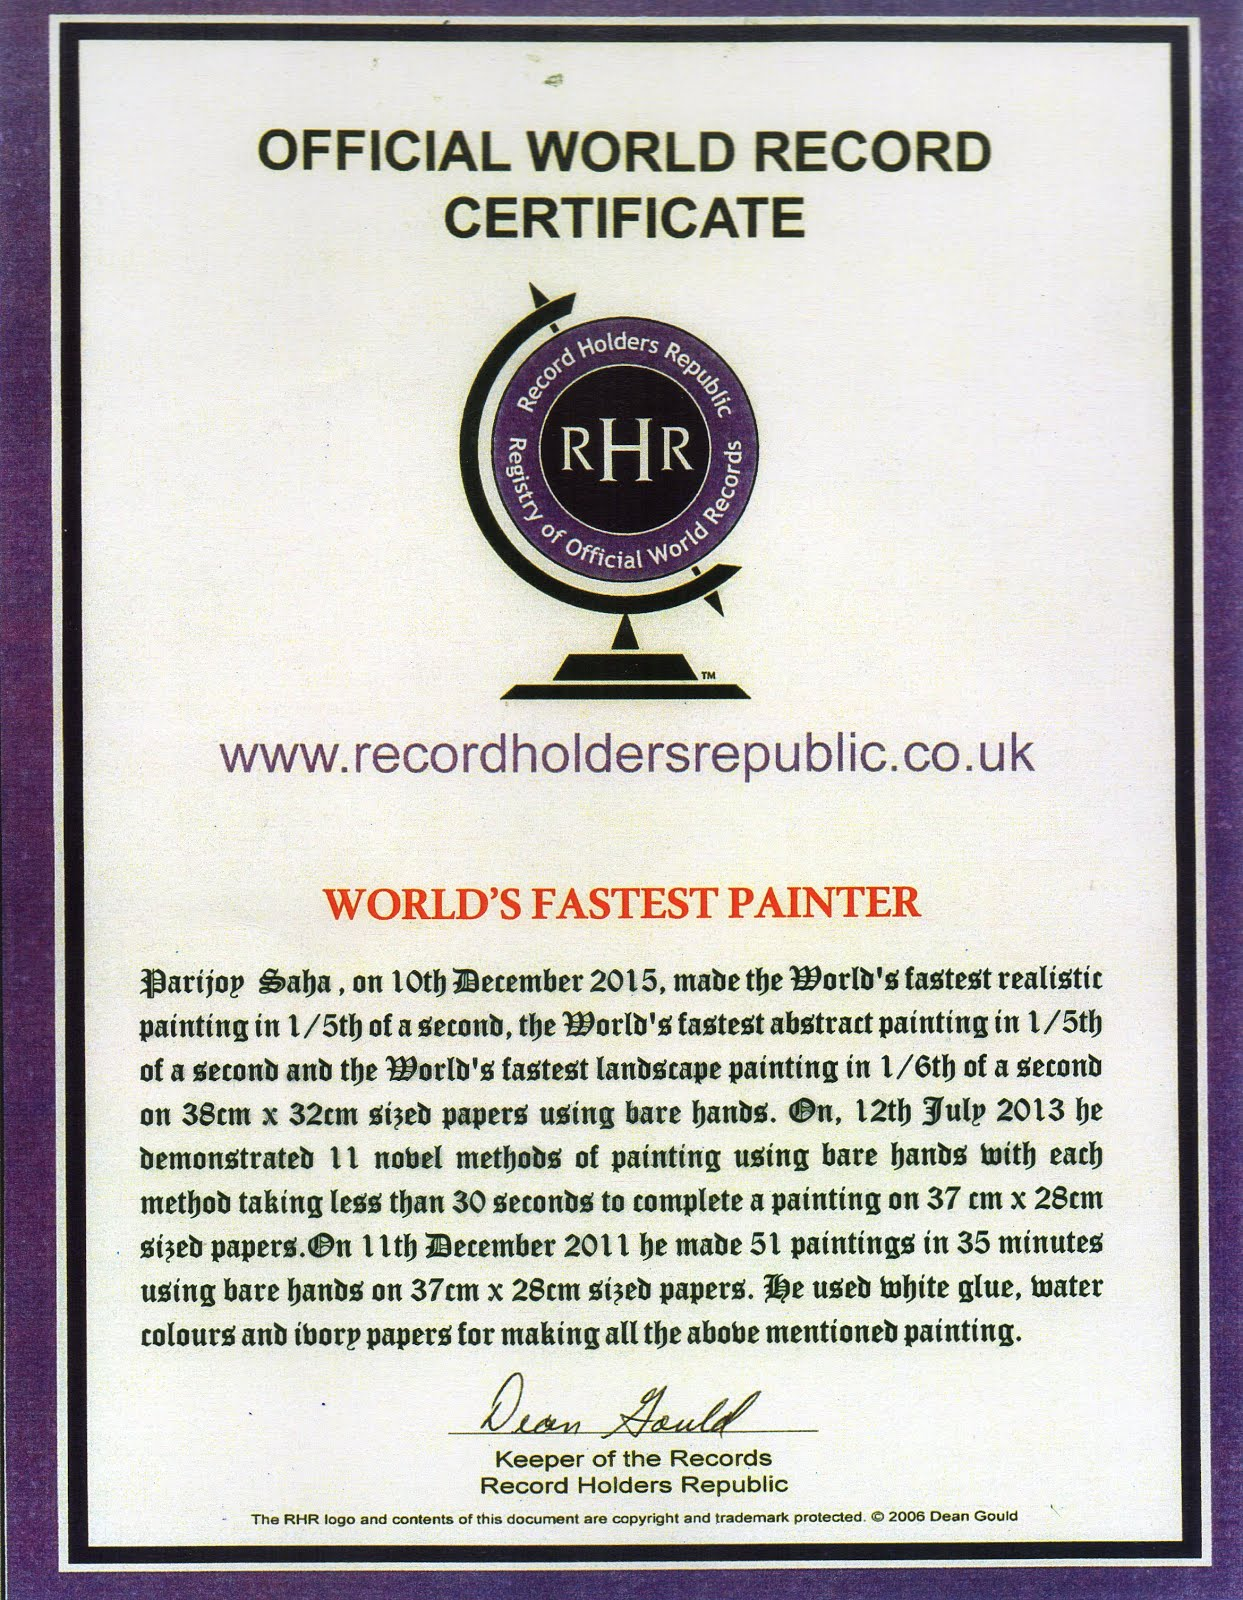 World Record Certificate for World's Fastest Painter